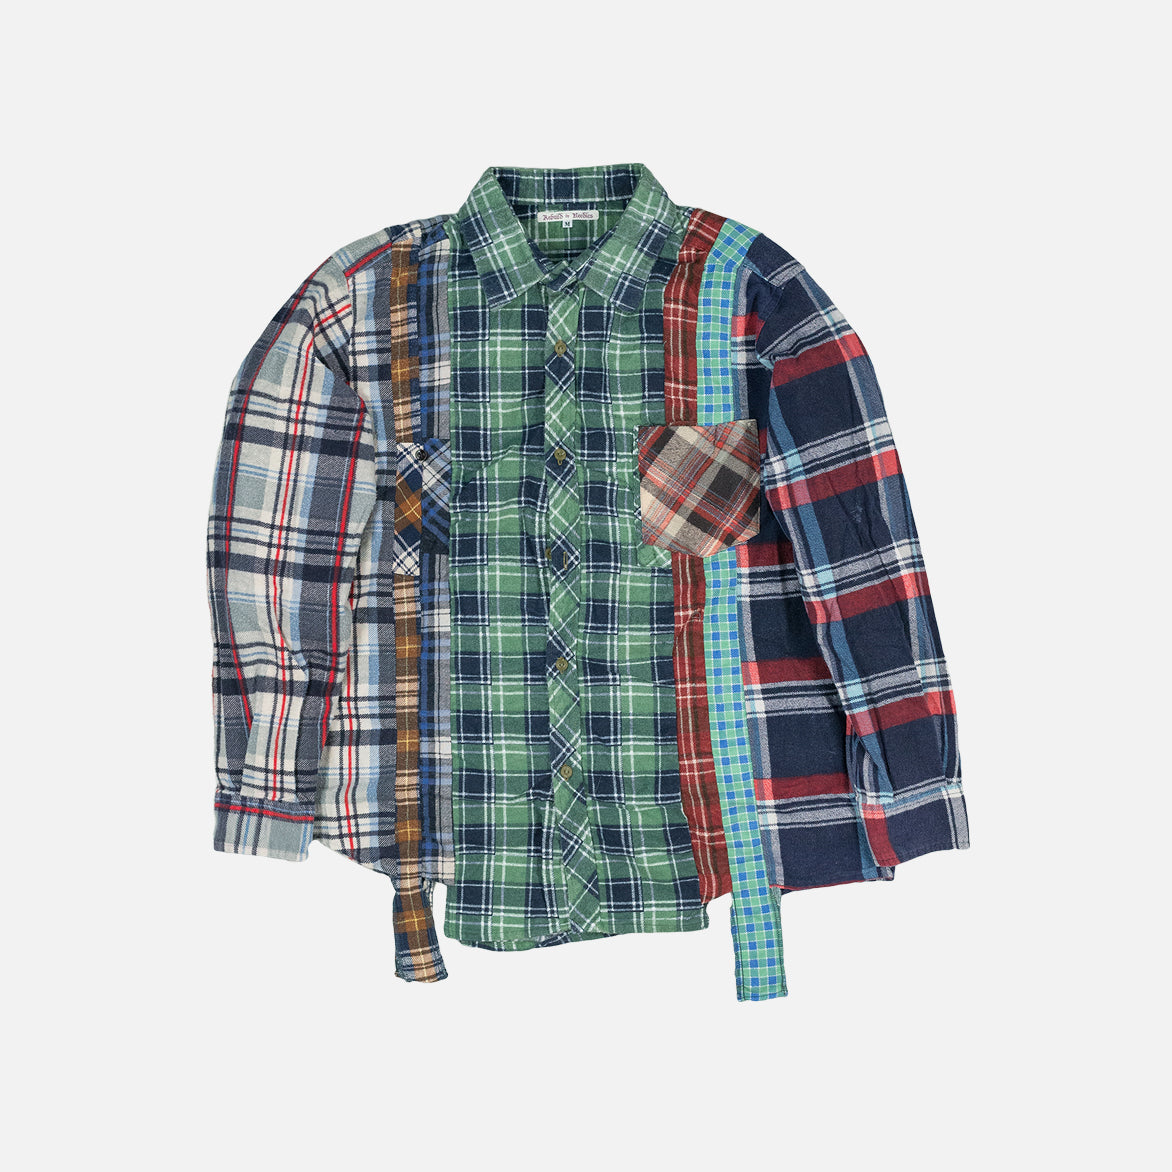 7 CUTS FLANNEL SHIRT - ASSORTED